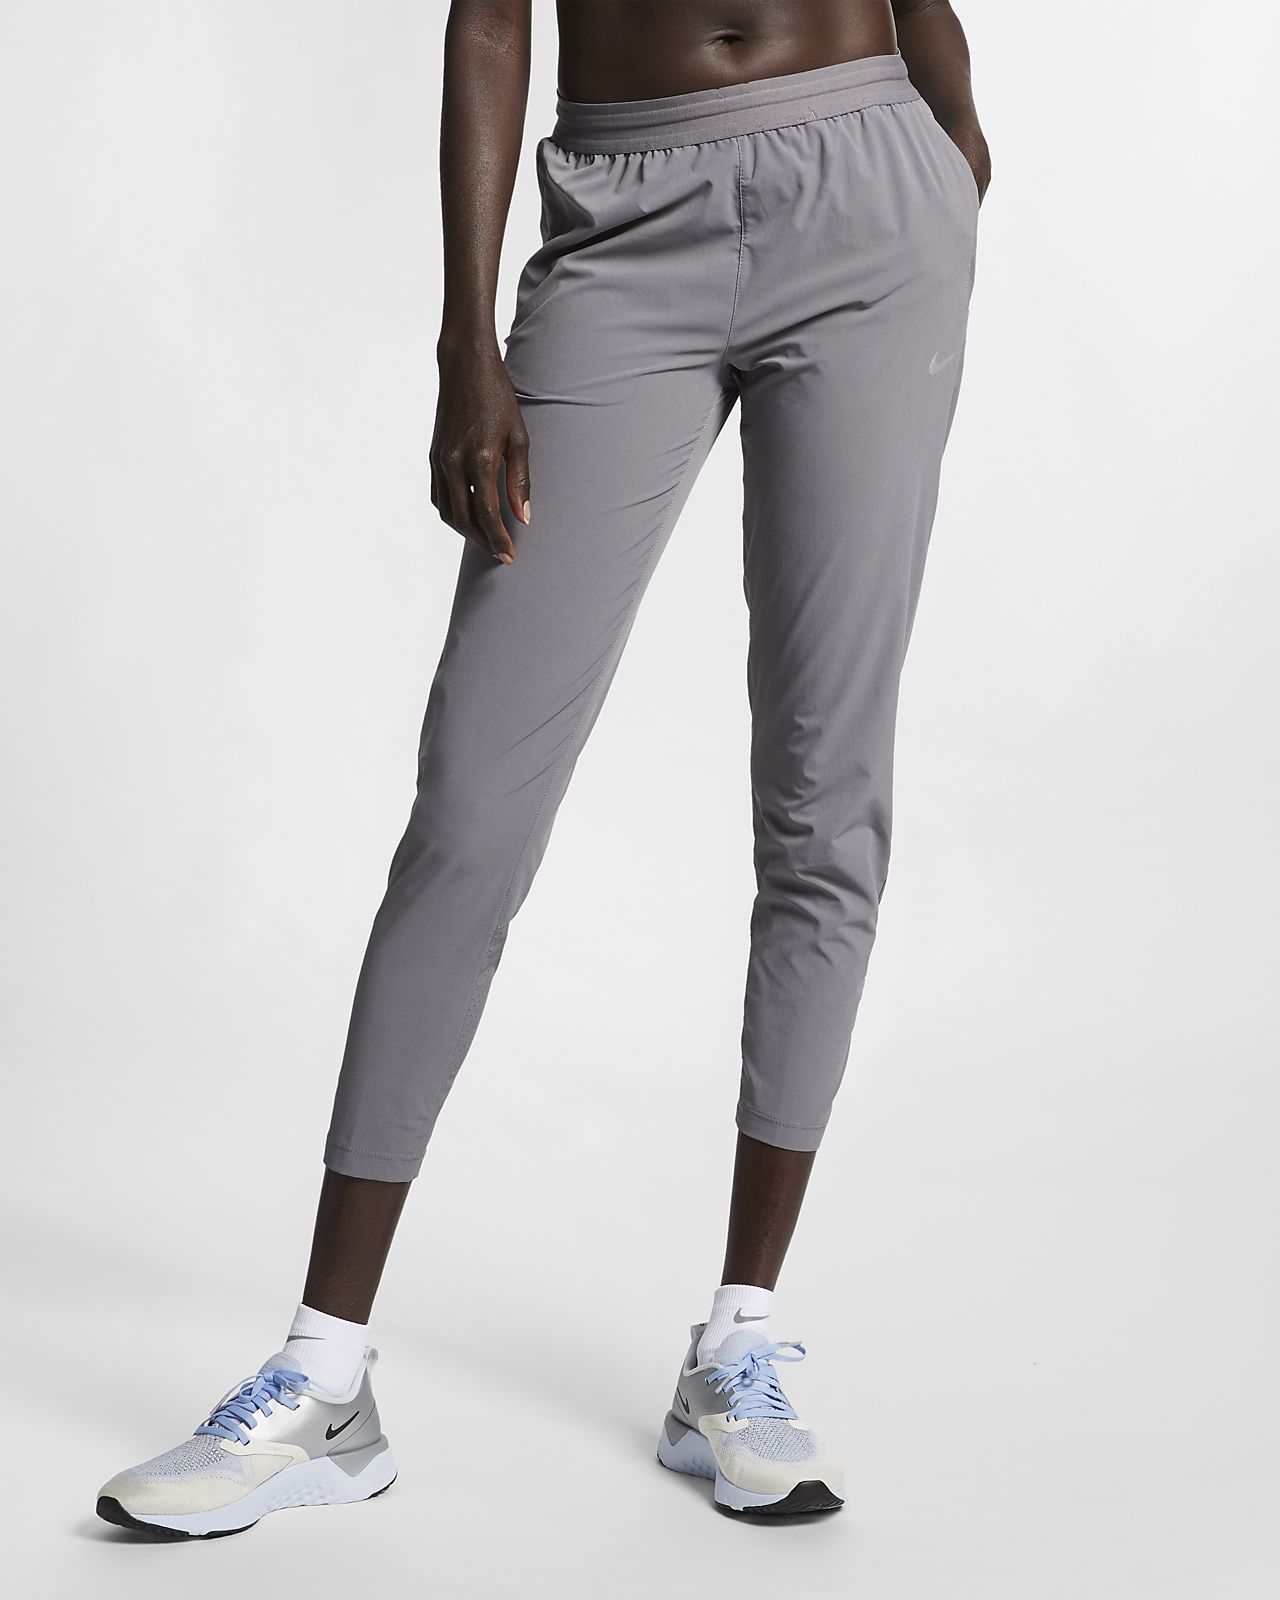 Nike Essential Women's 78 Running Trousers